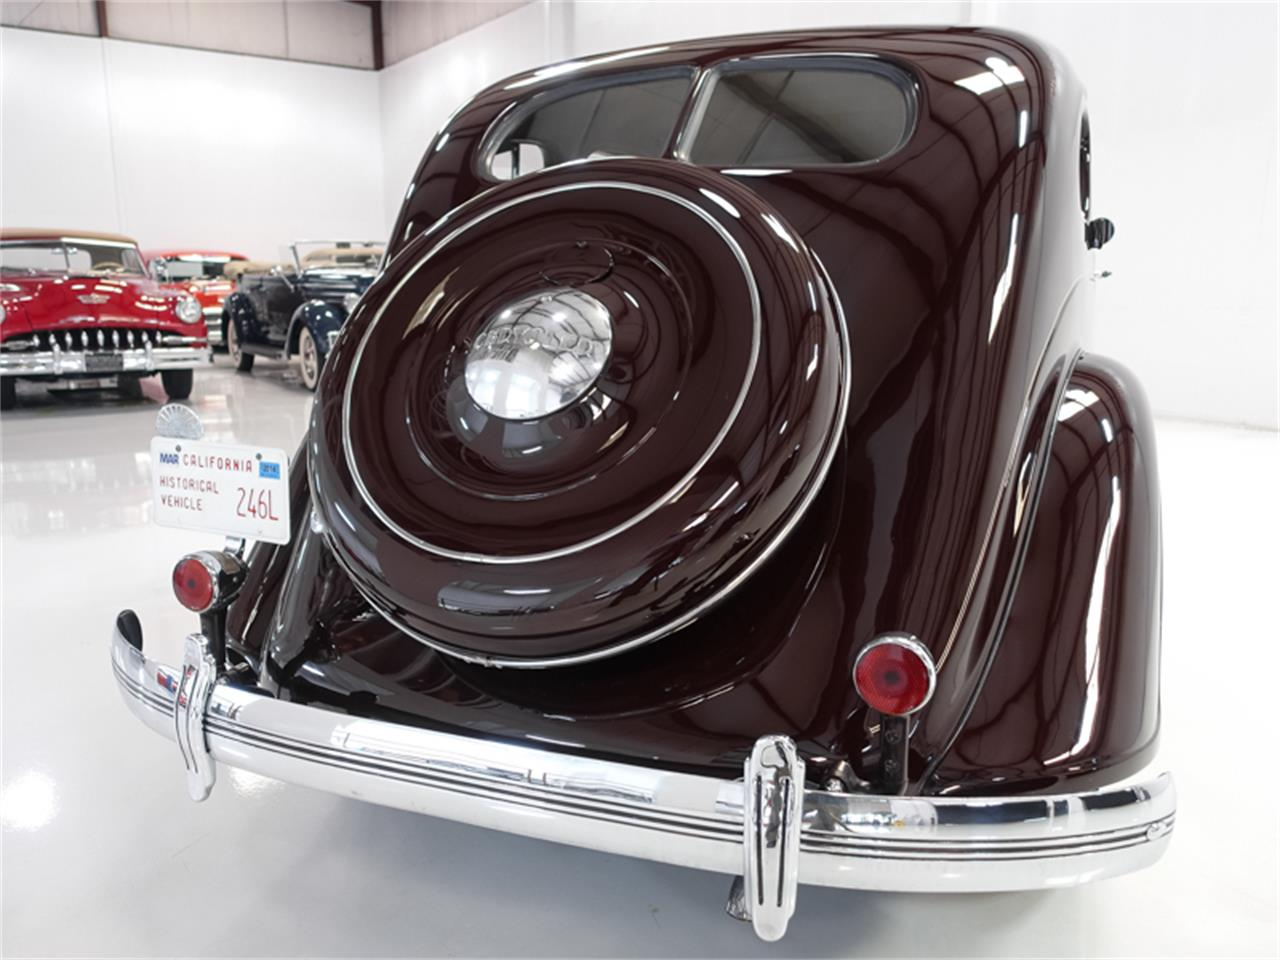 1935 Chrysler Airflow for sale in St. Louis, MO – photo 9